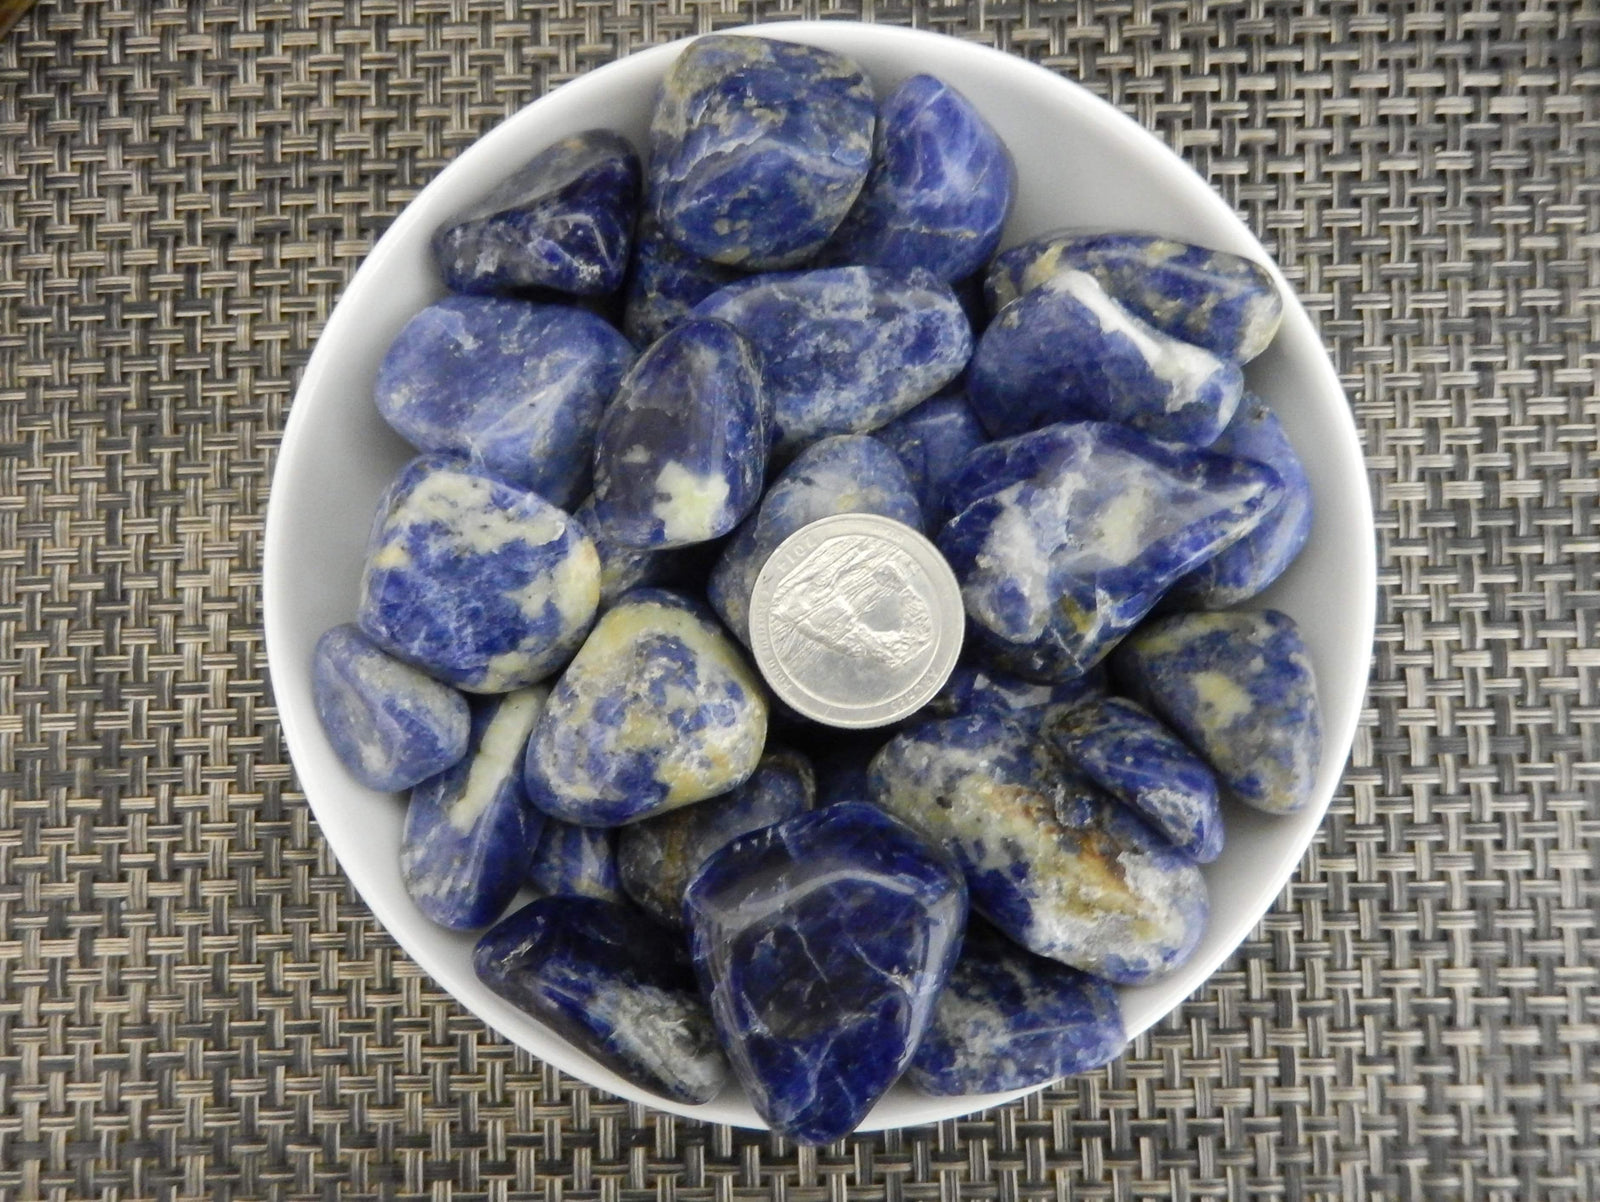 Tumbled Stones - 1/2 Lb Blue Sodalite Tumbled Gemstones - Polished Stones - Jewelry Supplies - Arts And Crafts - Choose 1,3,5 Bags (TS-05)